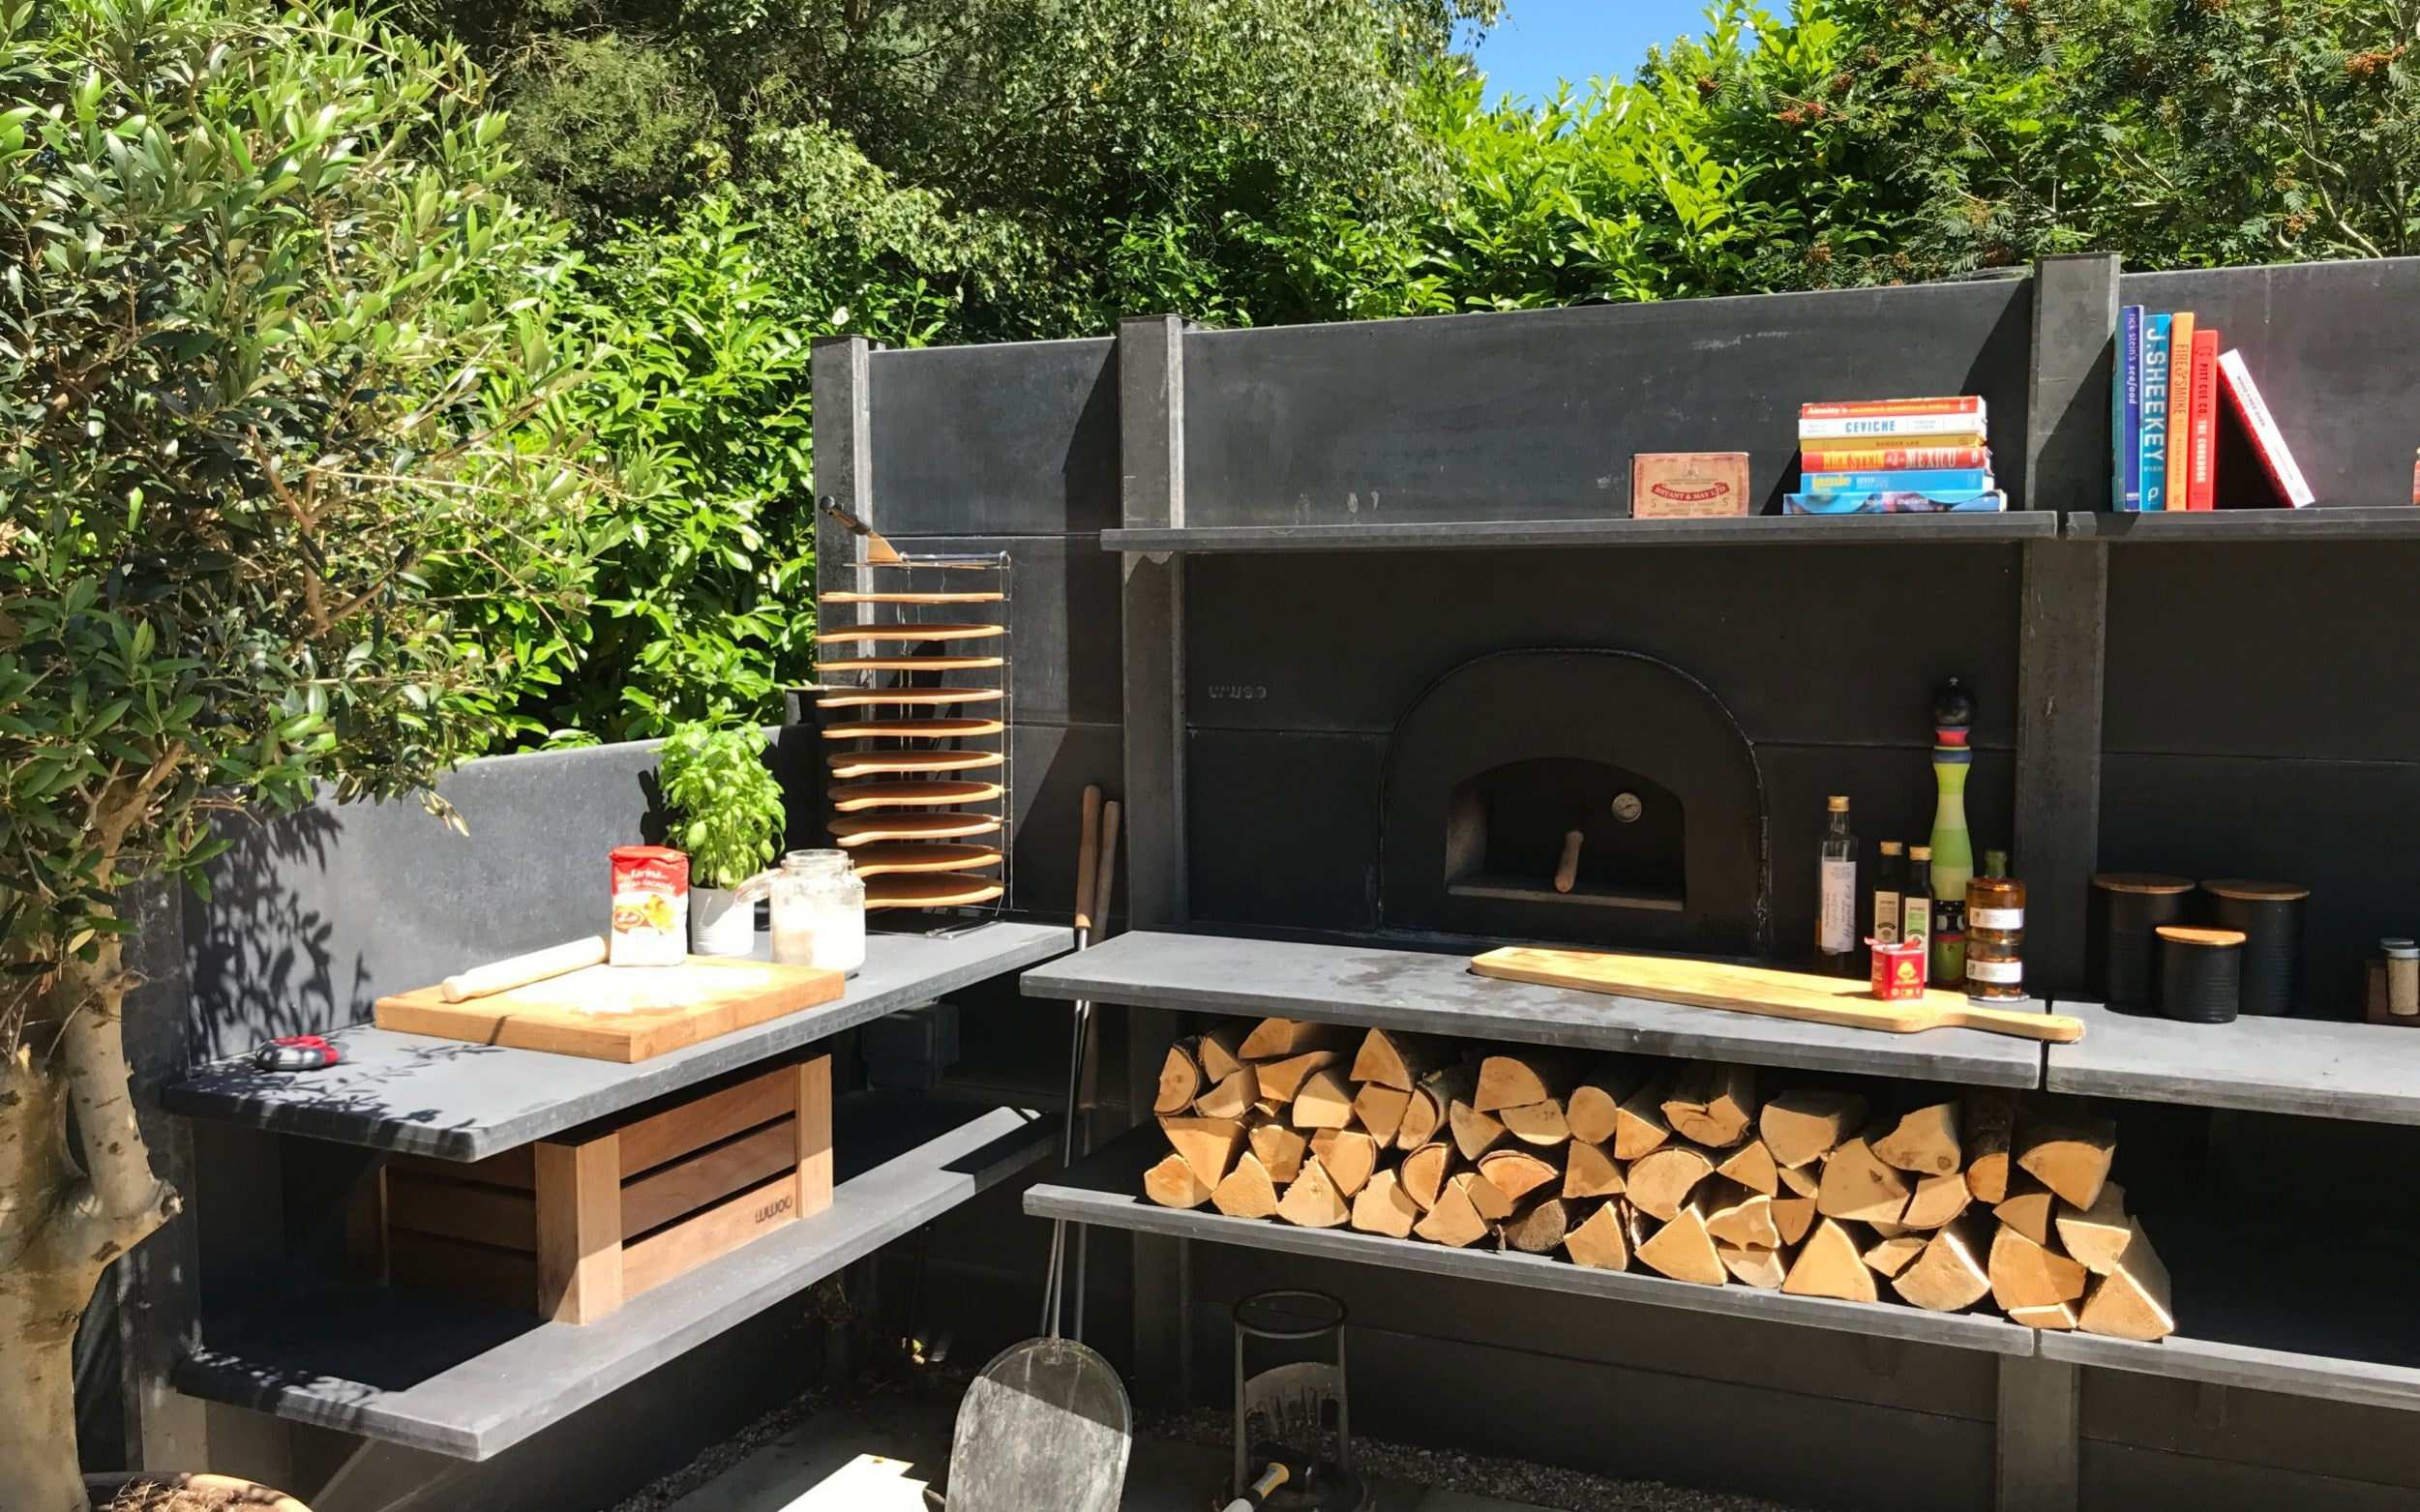 outdoor kitchen modular and bath showroom nj how to use your barbecue all year round set up an a concrete by wwoo from 3 000